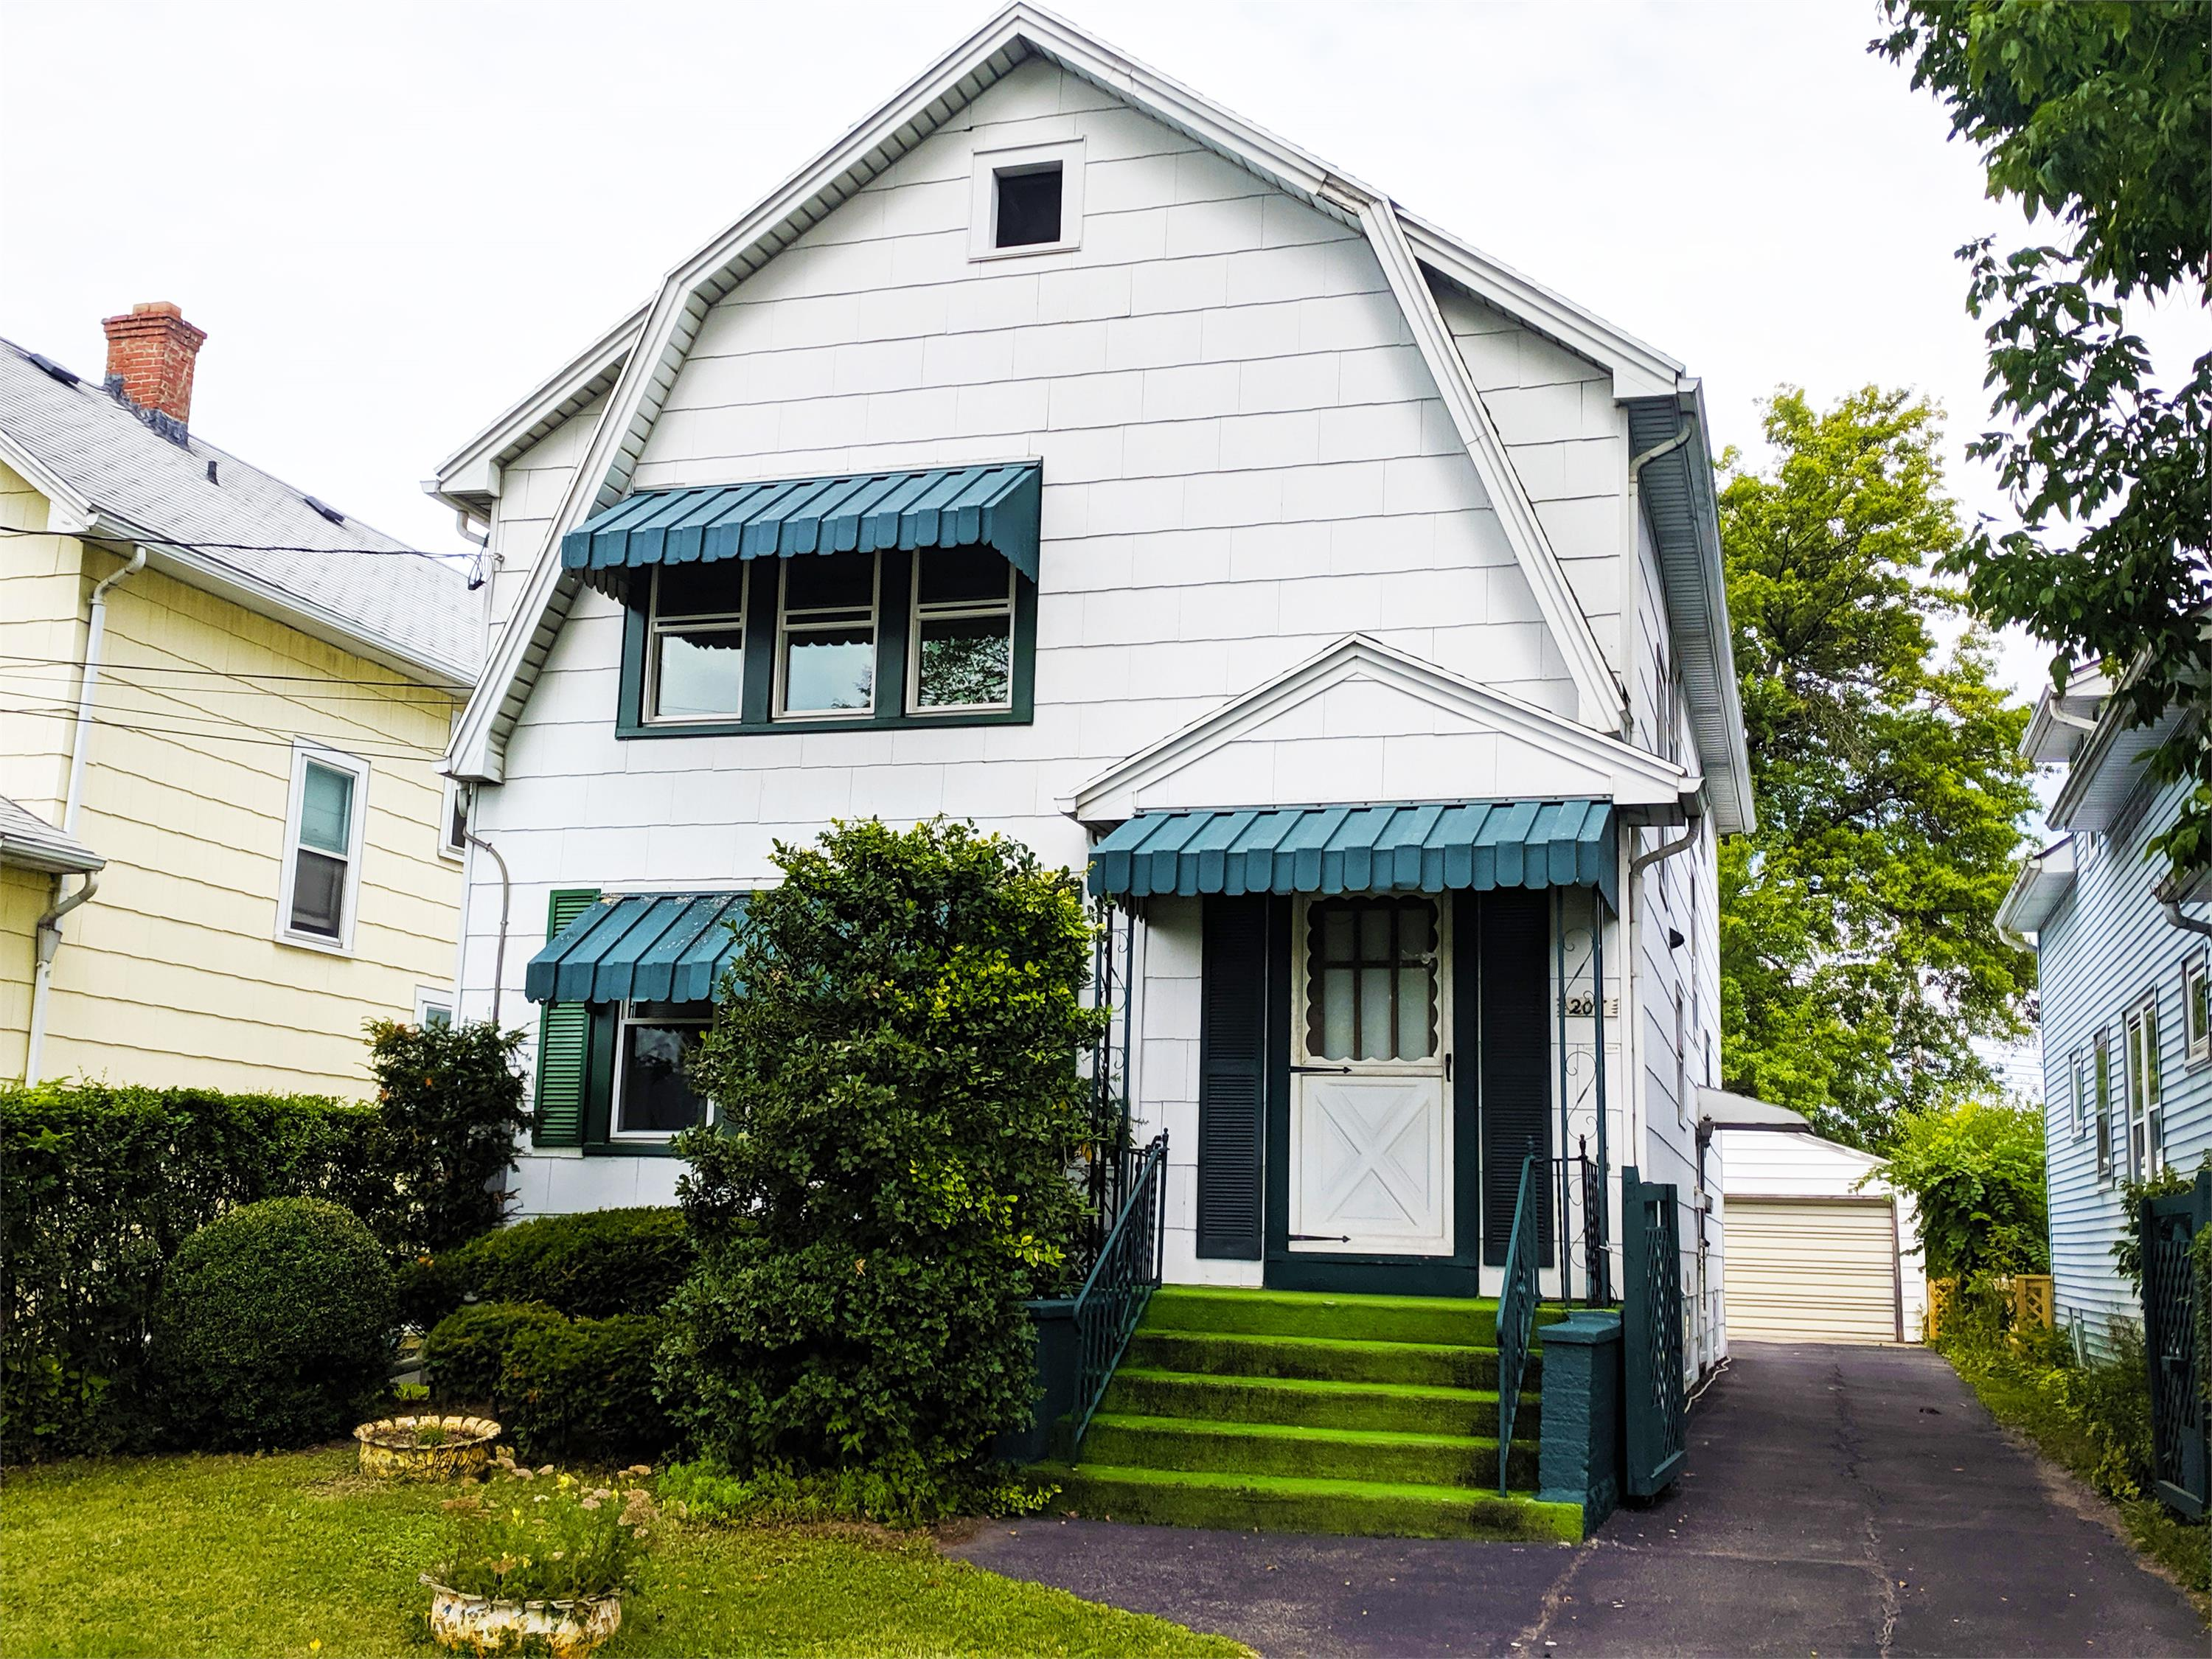 Peachy 20 Best Apartments For Rent In Buffalo Ny With Pictures Interior Design Ideas Tzicisoteloinfo